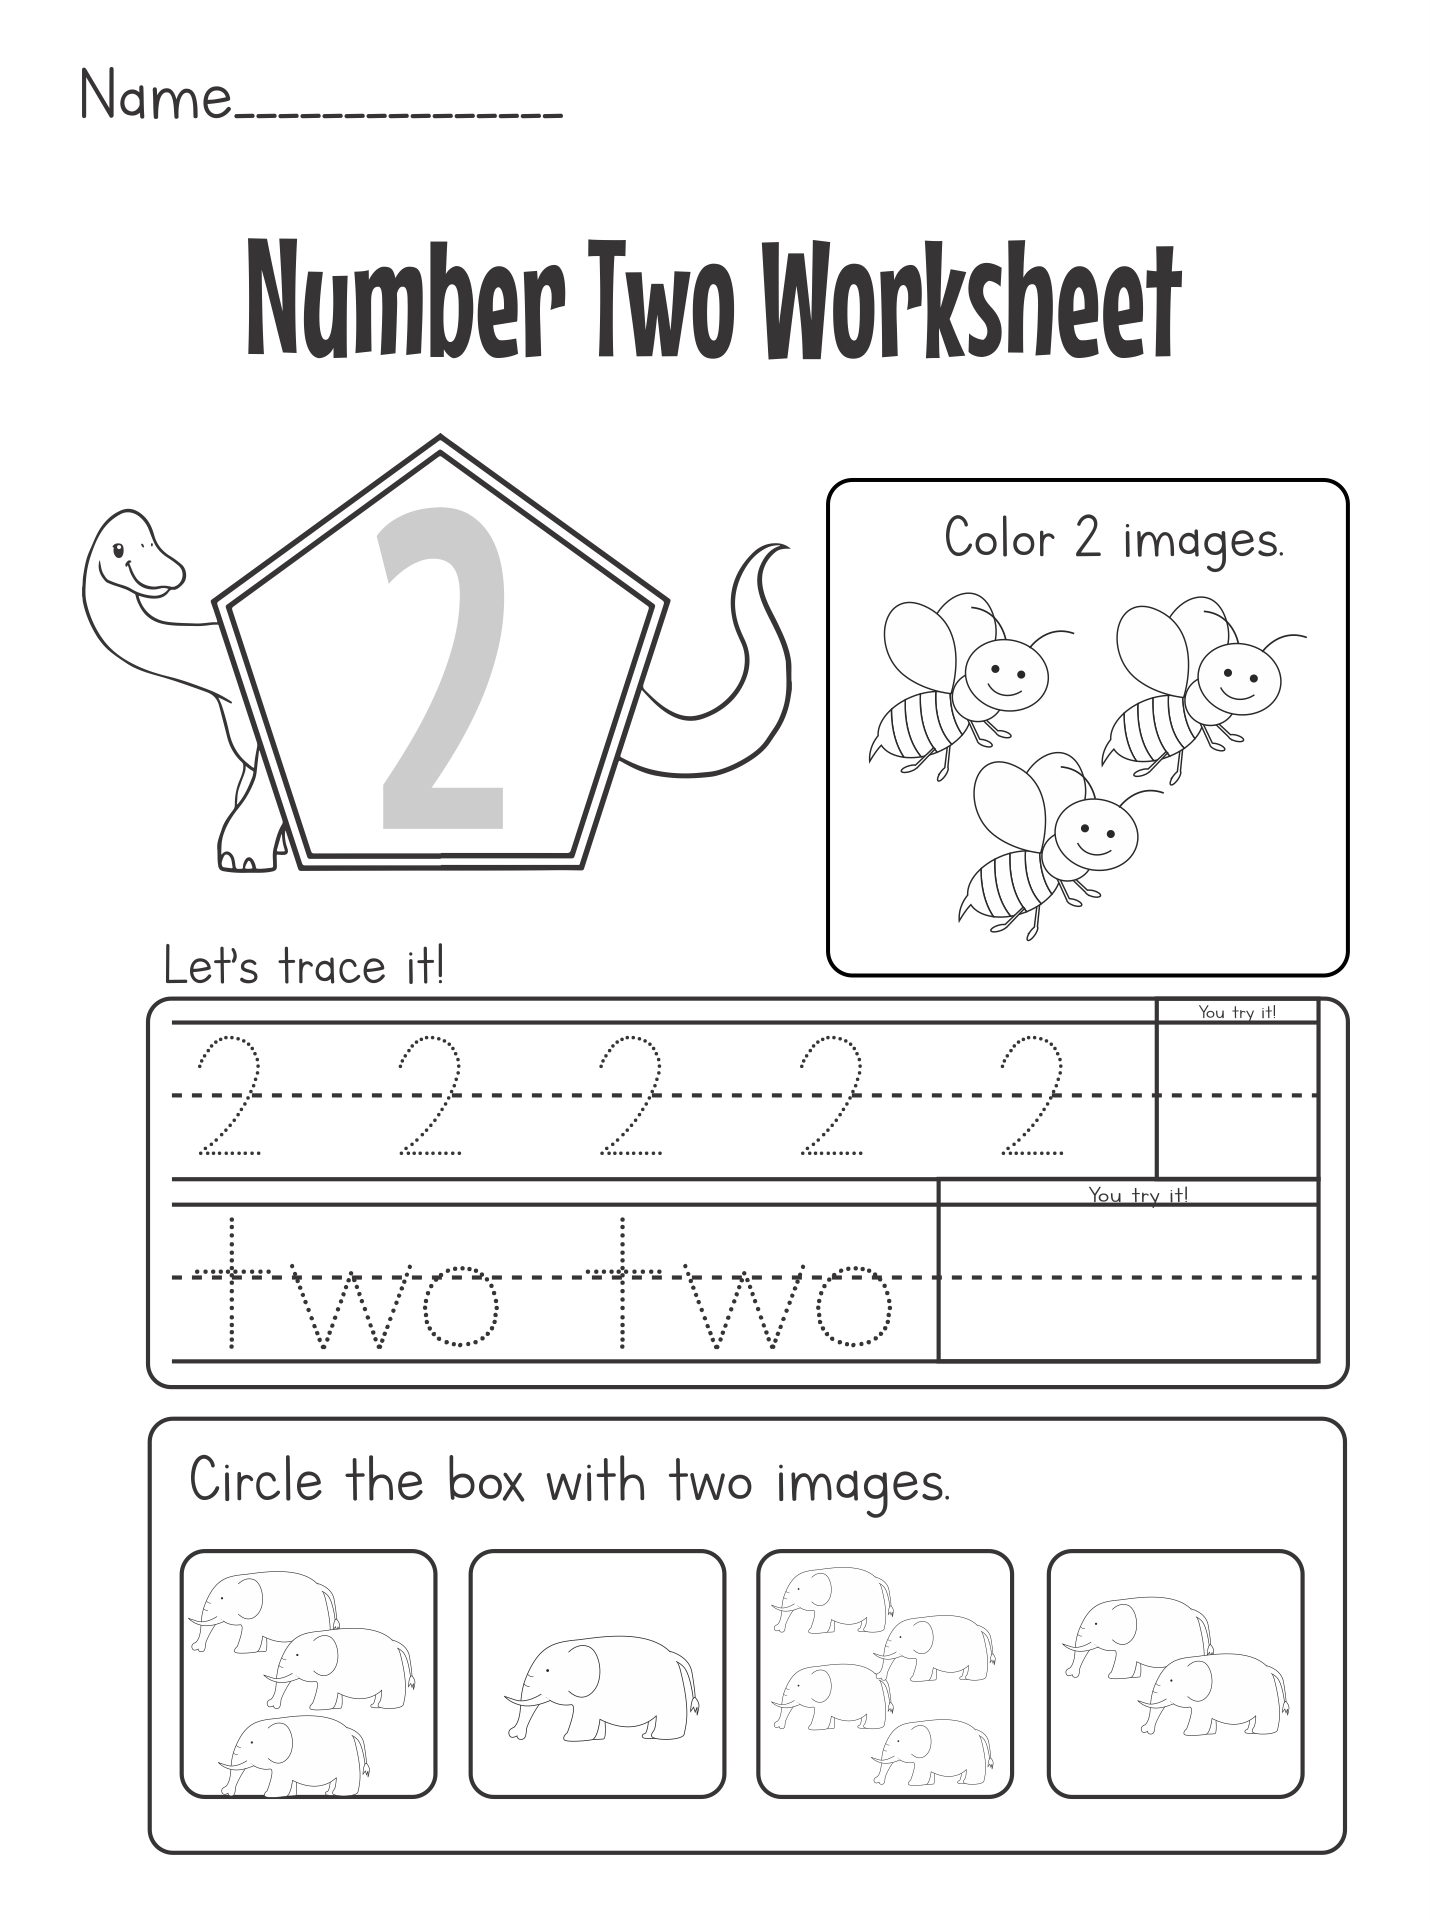 Number Printable Images Gallery Category Page 1 ...